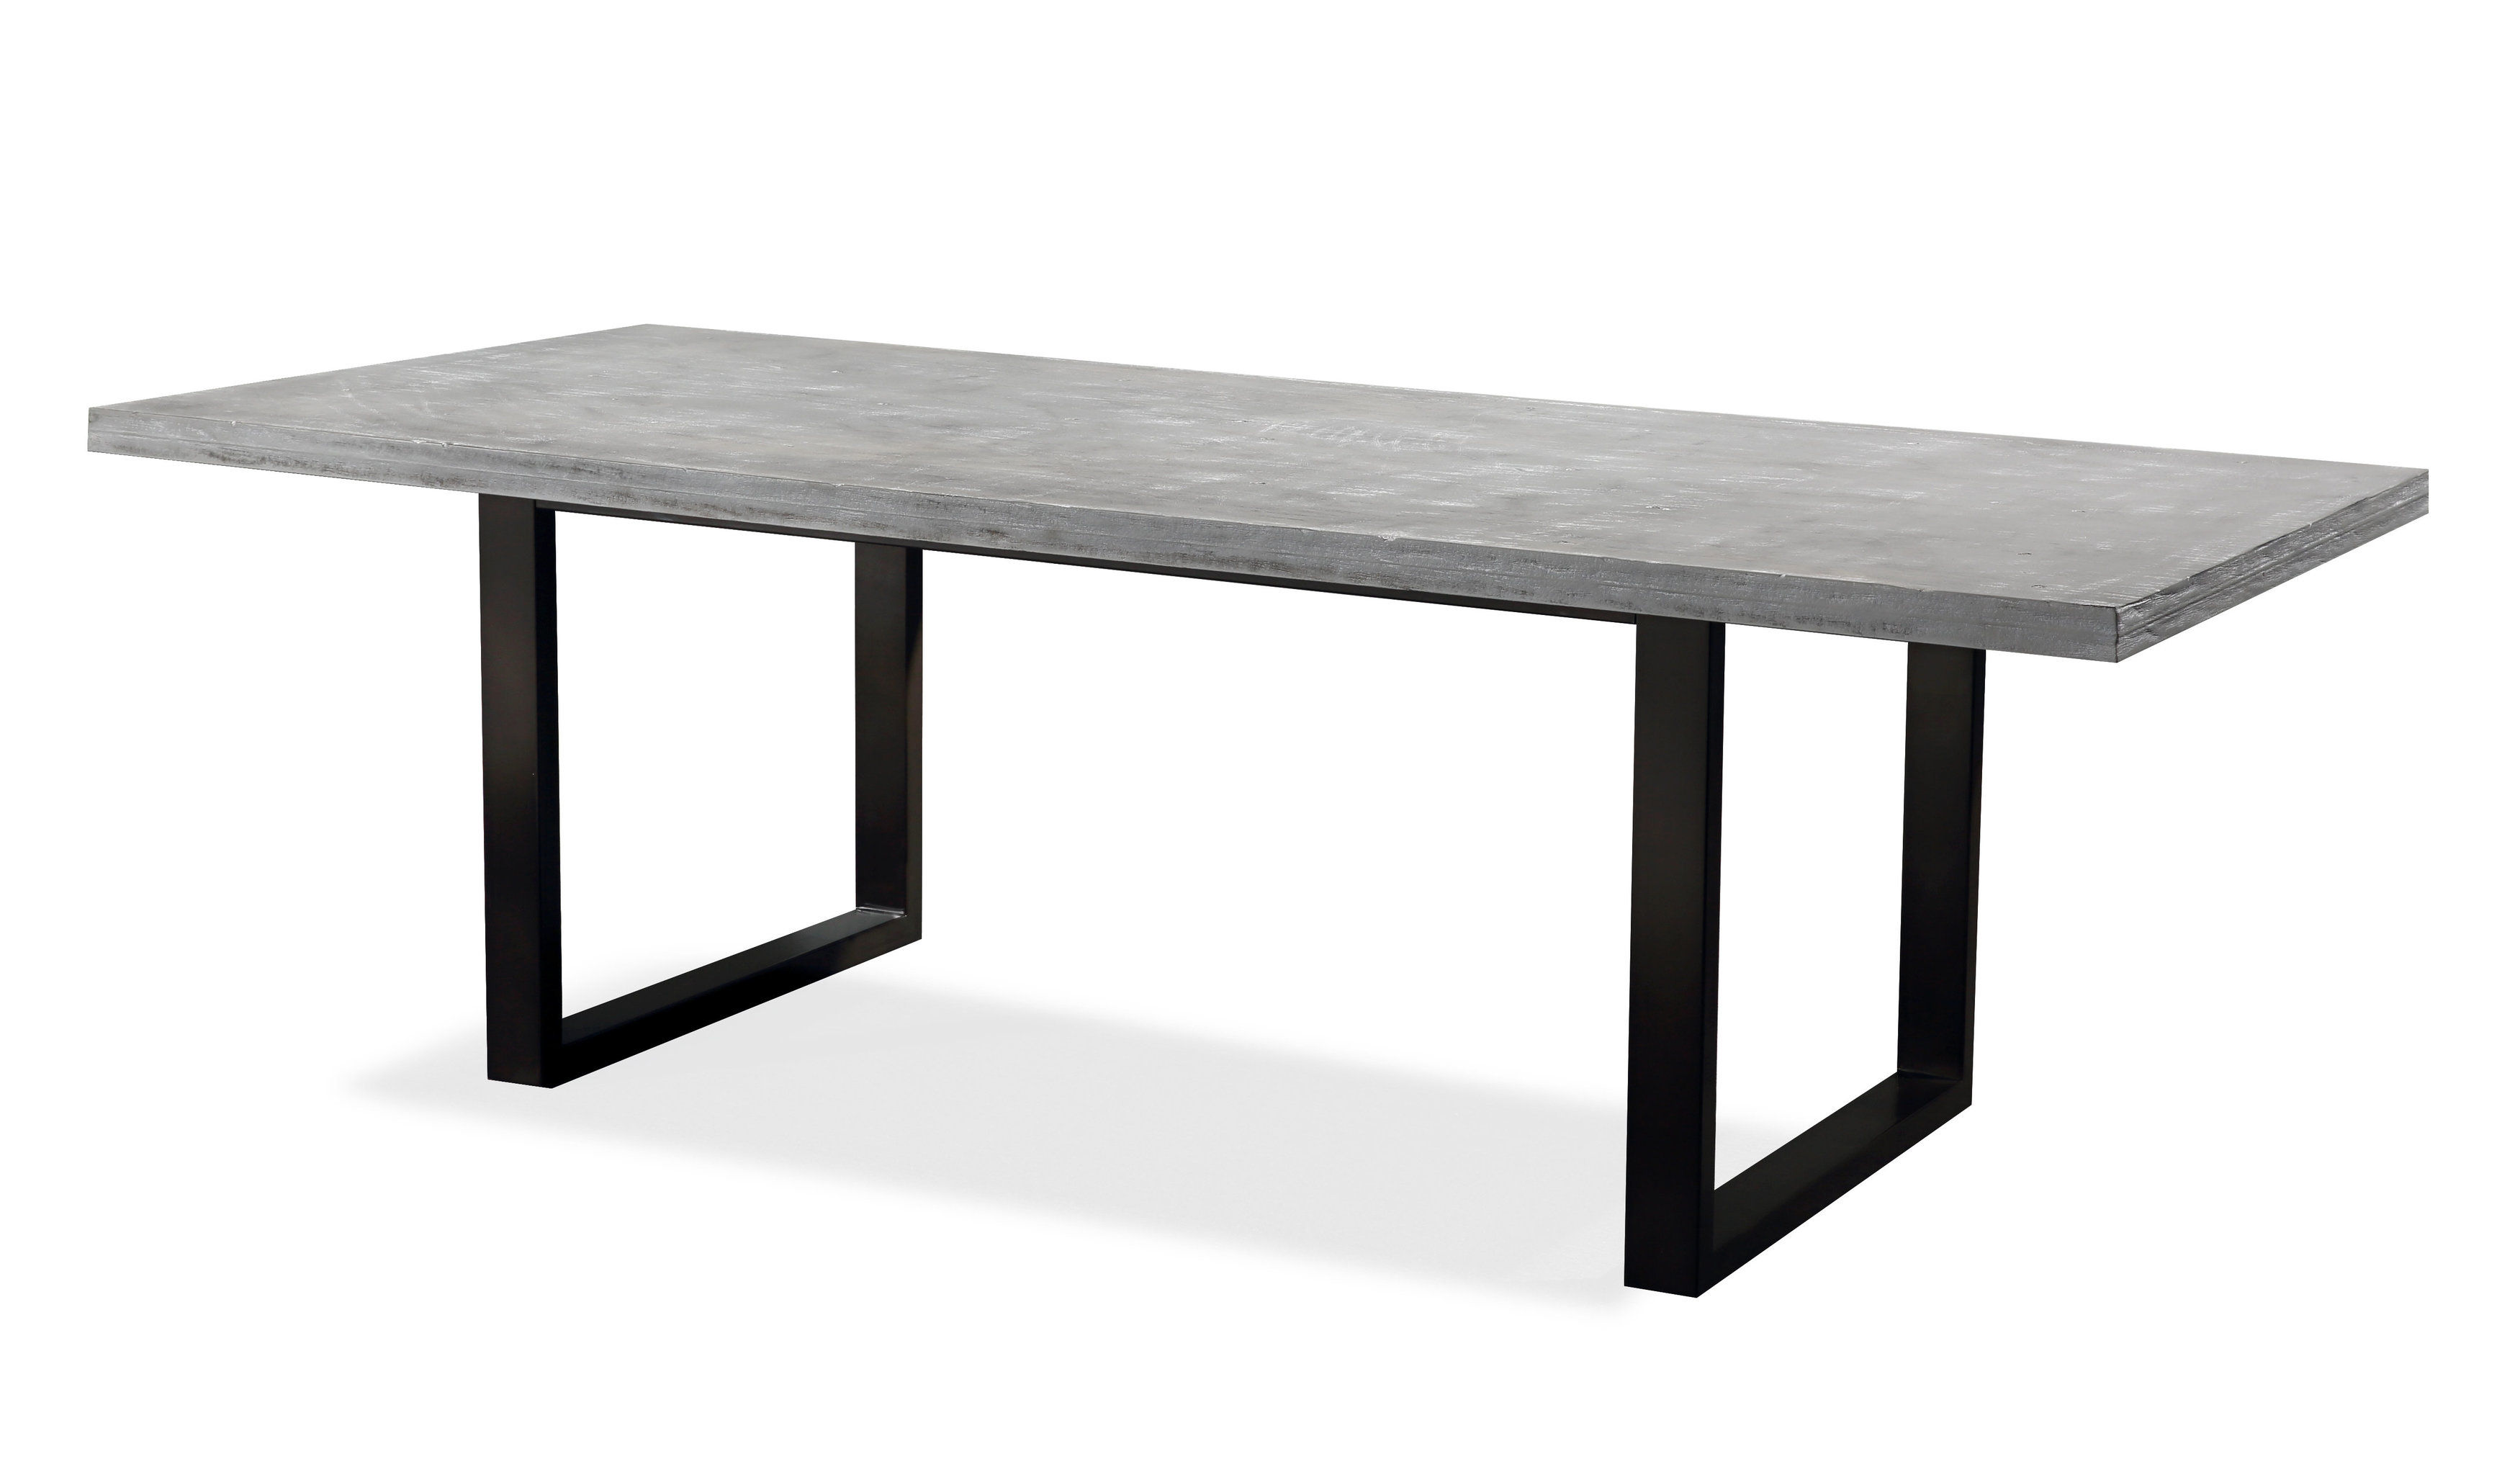 Tov Furniture Urban Light Washed Grey Dining Table Click To Enlarge